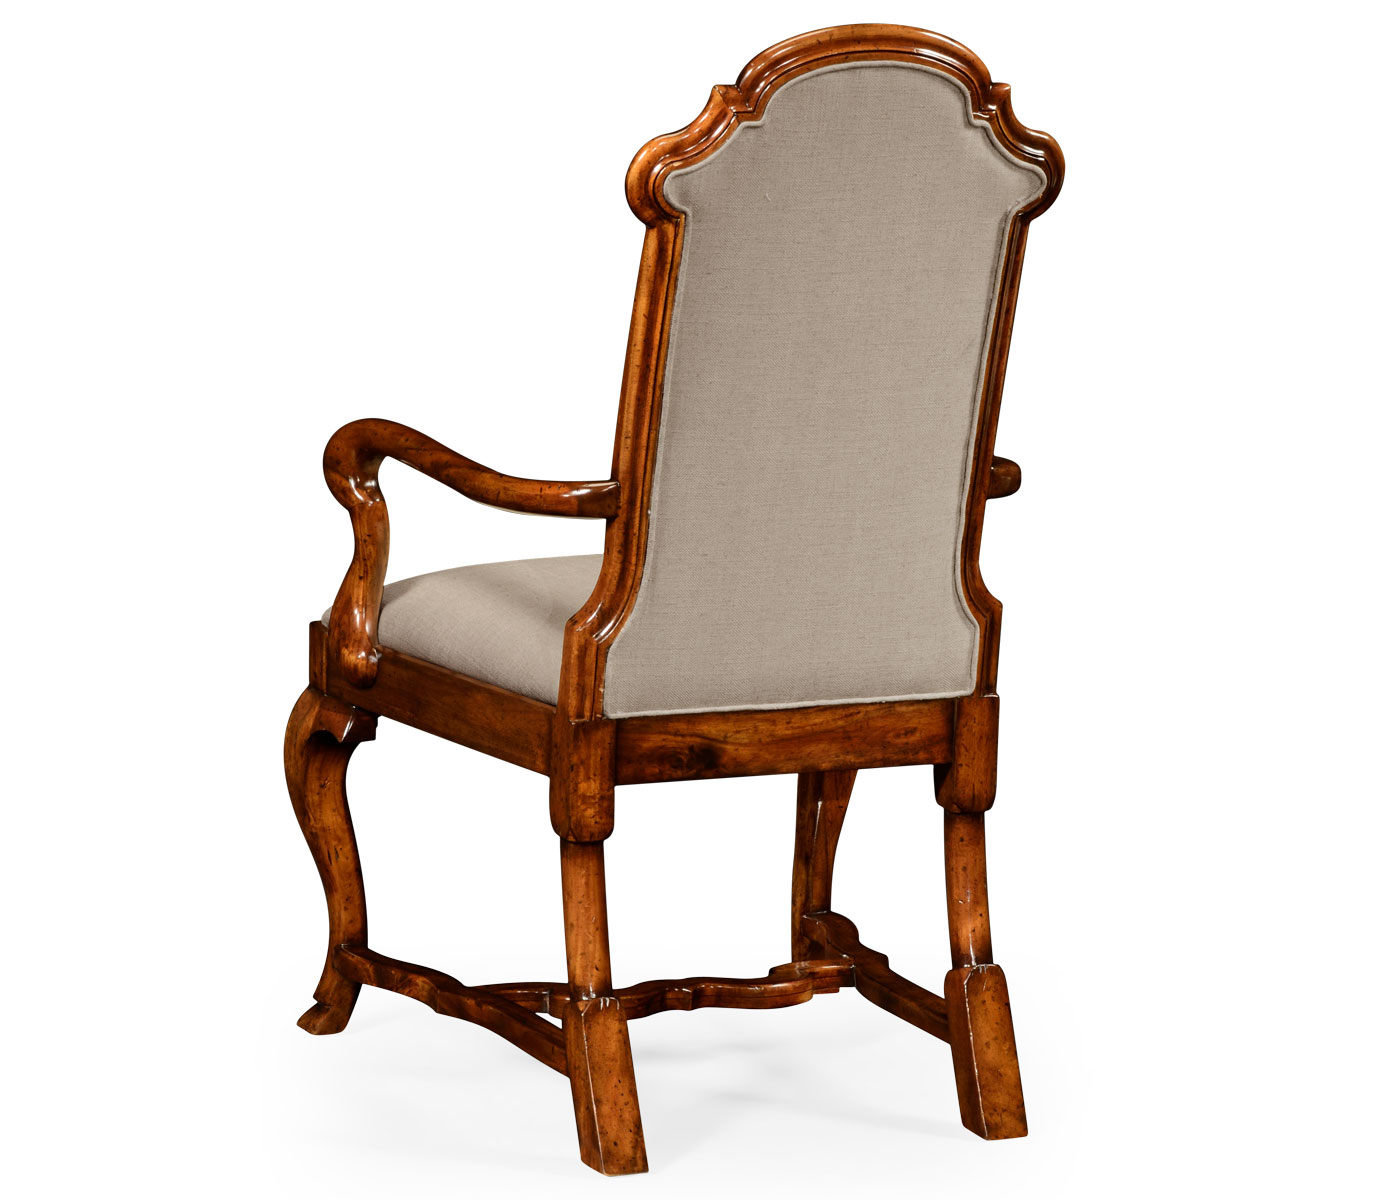 Queen Anne Style Dining or Fireside Chair (Arm)